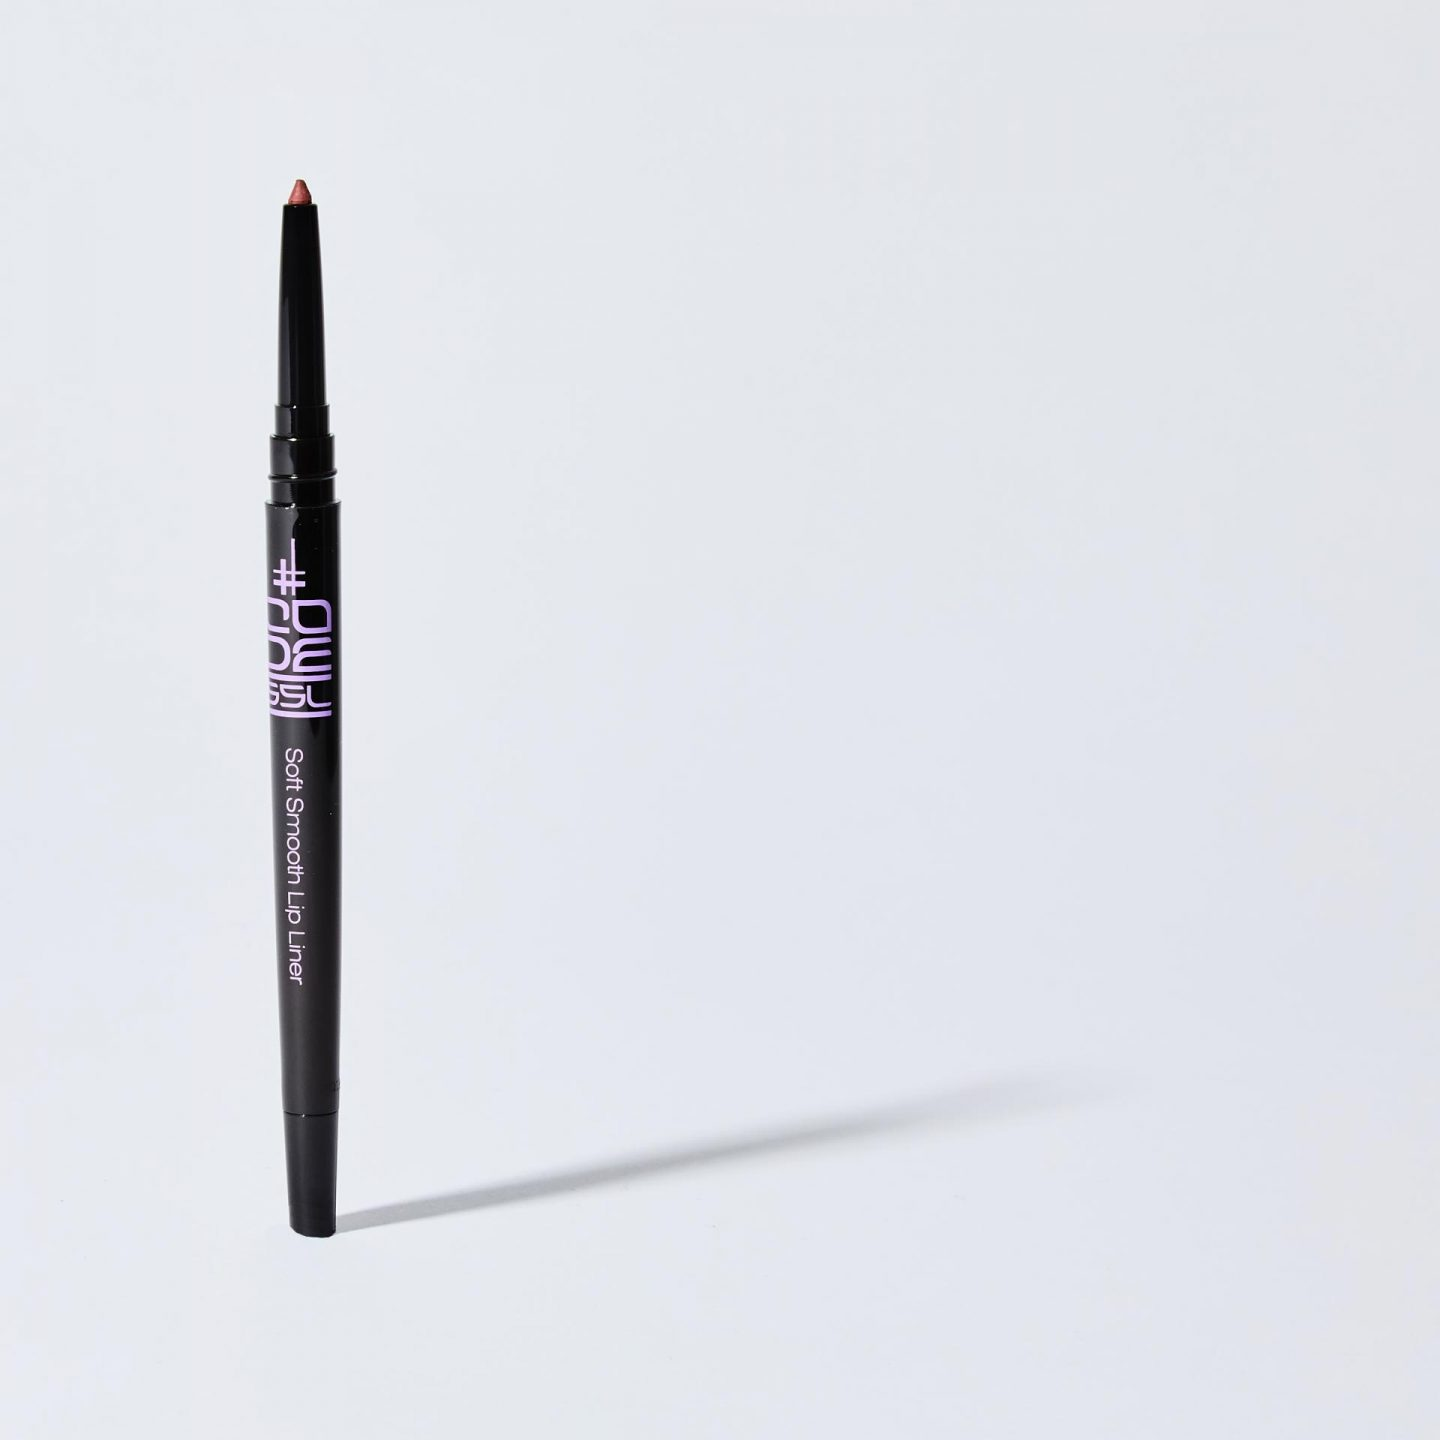 CODE SSL is a gorgeous 3-in-1 lip liner, lipstick and lip plumper. Included in July's Little-Known Box